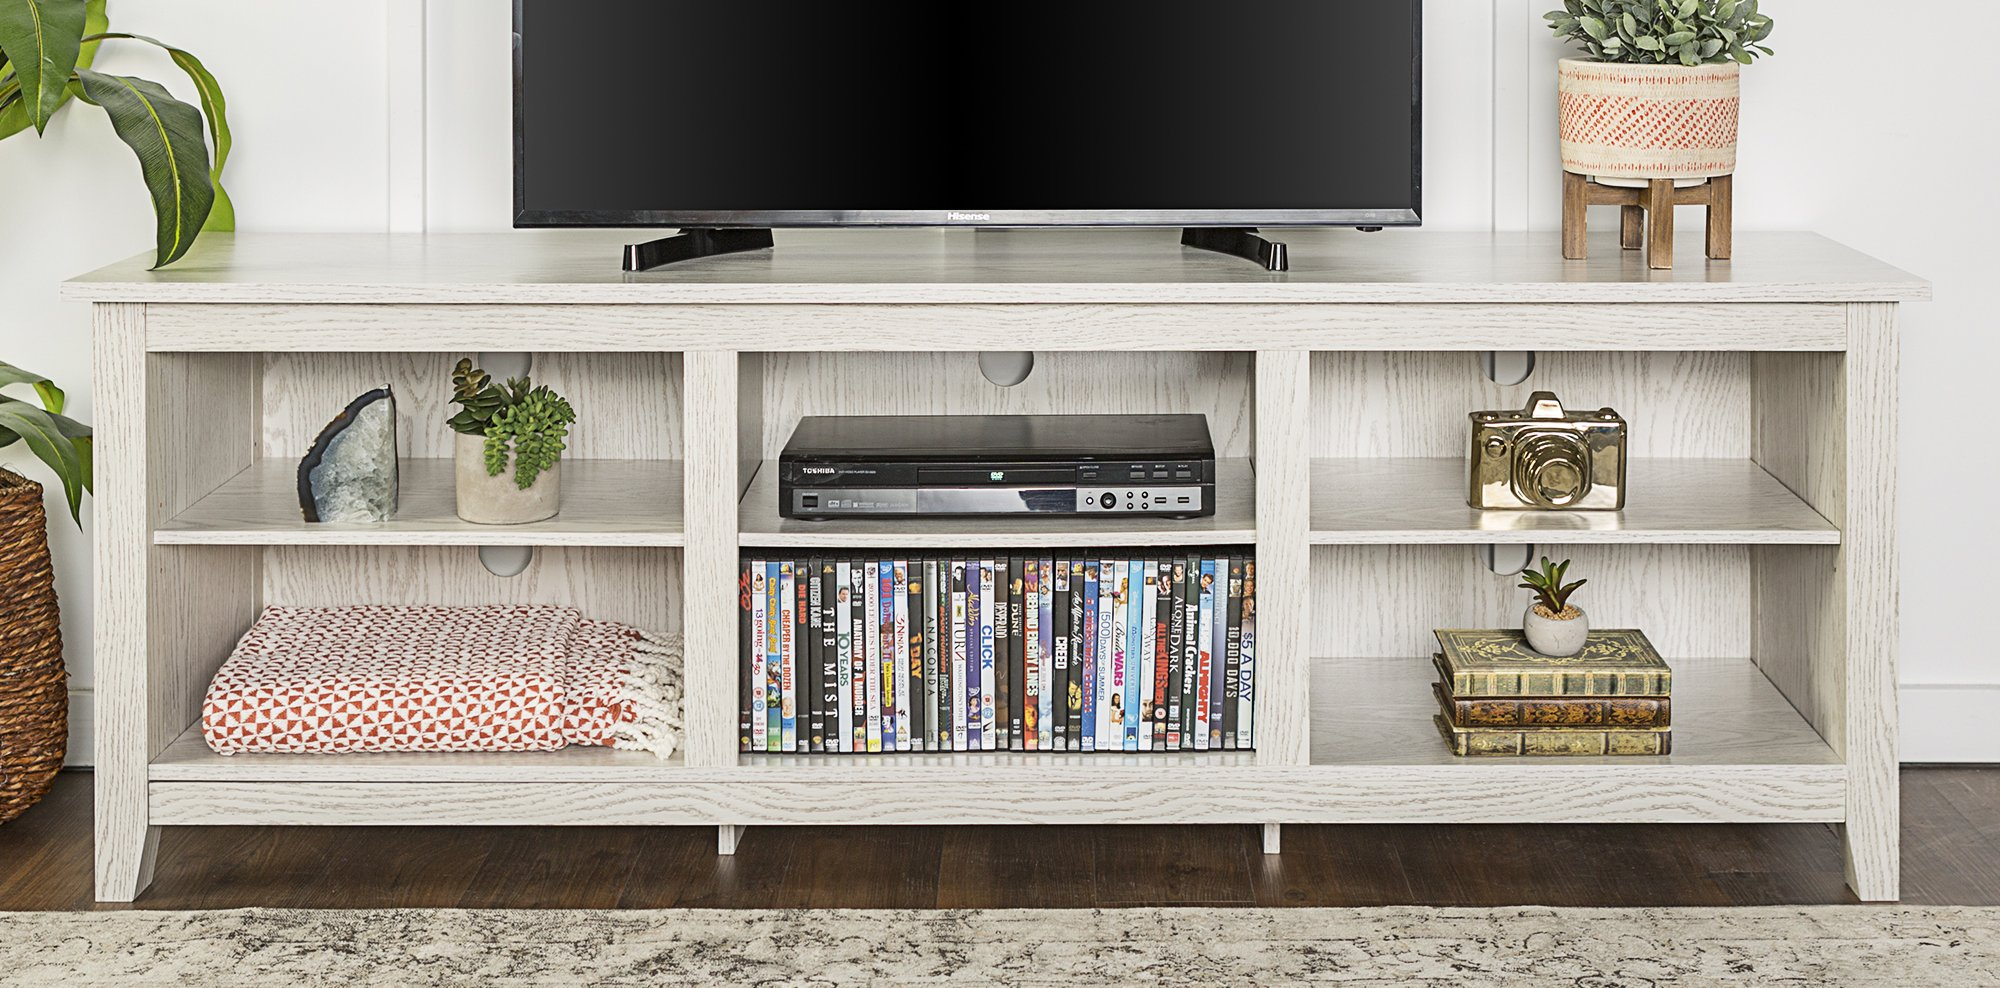 WE Furniture 70'' Wood Media TV Stand Console - White Wash